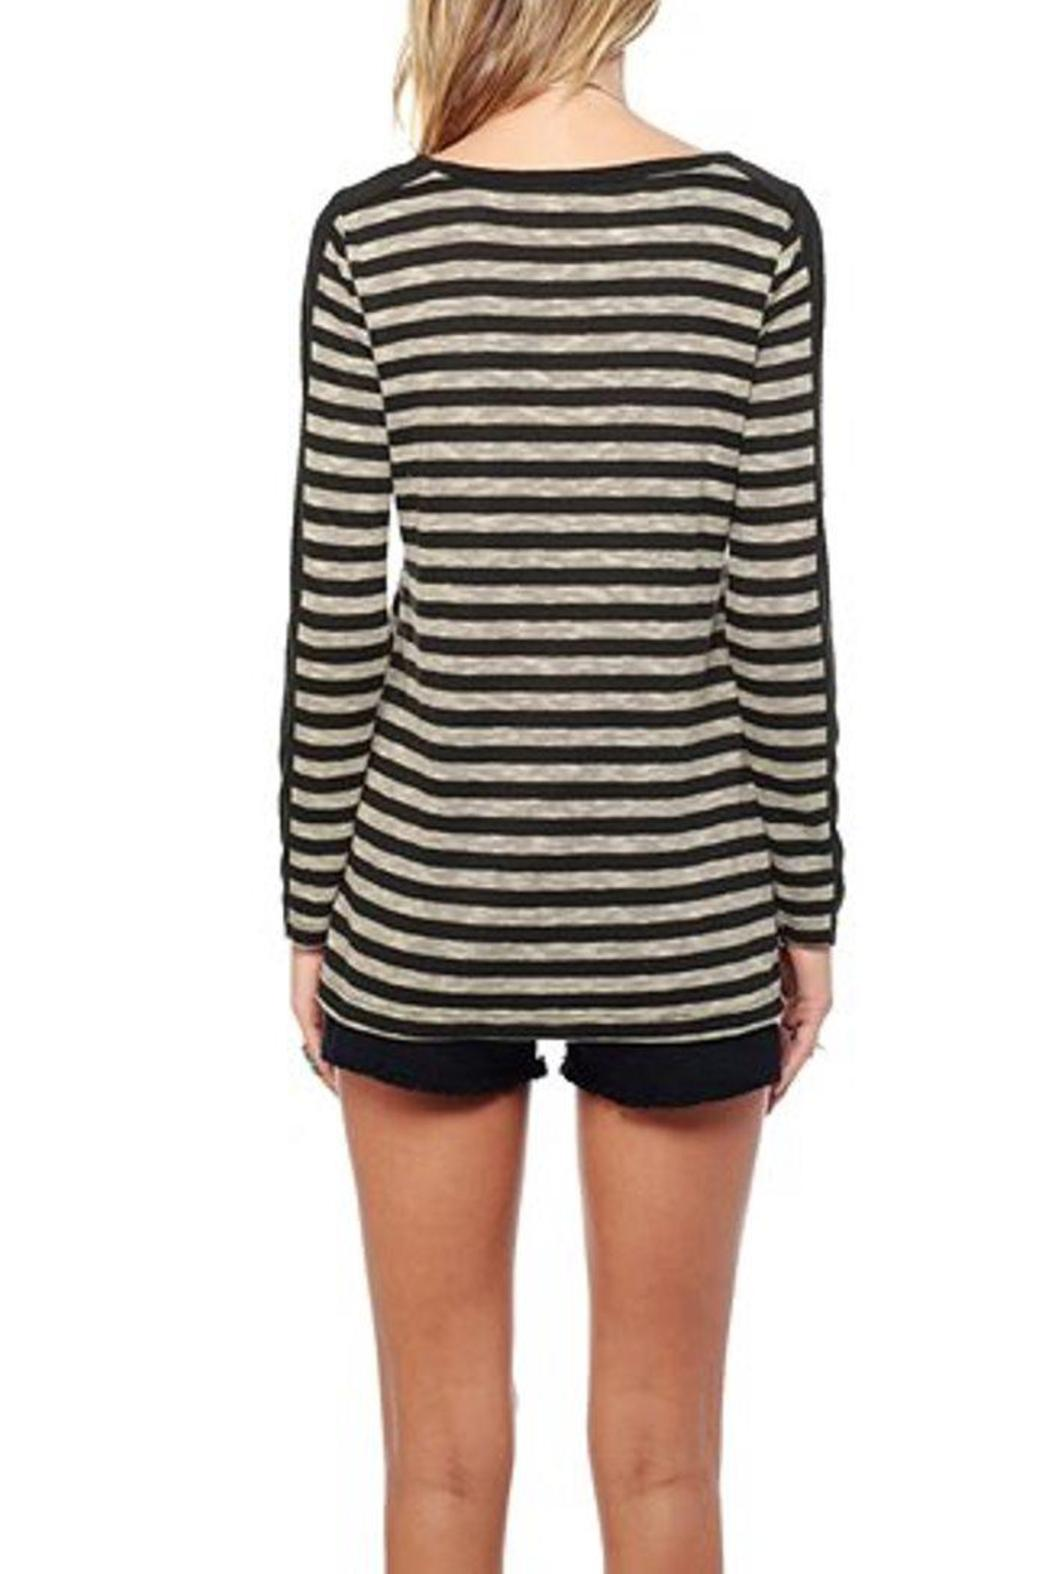 Jack by BB Dakota Fitz Striped Top - Back Cropped Image